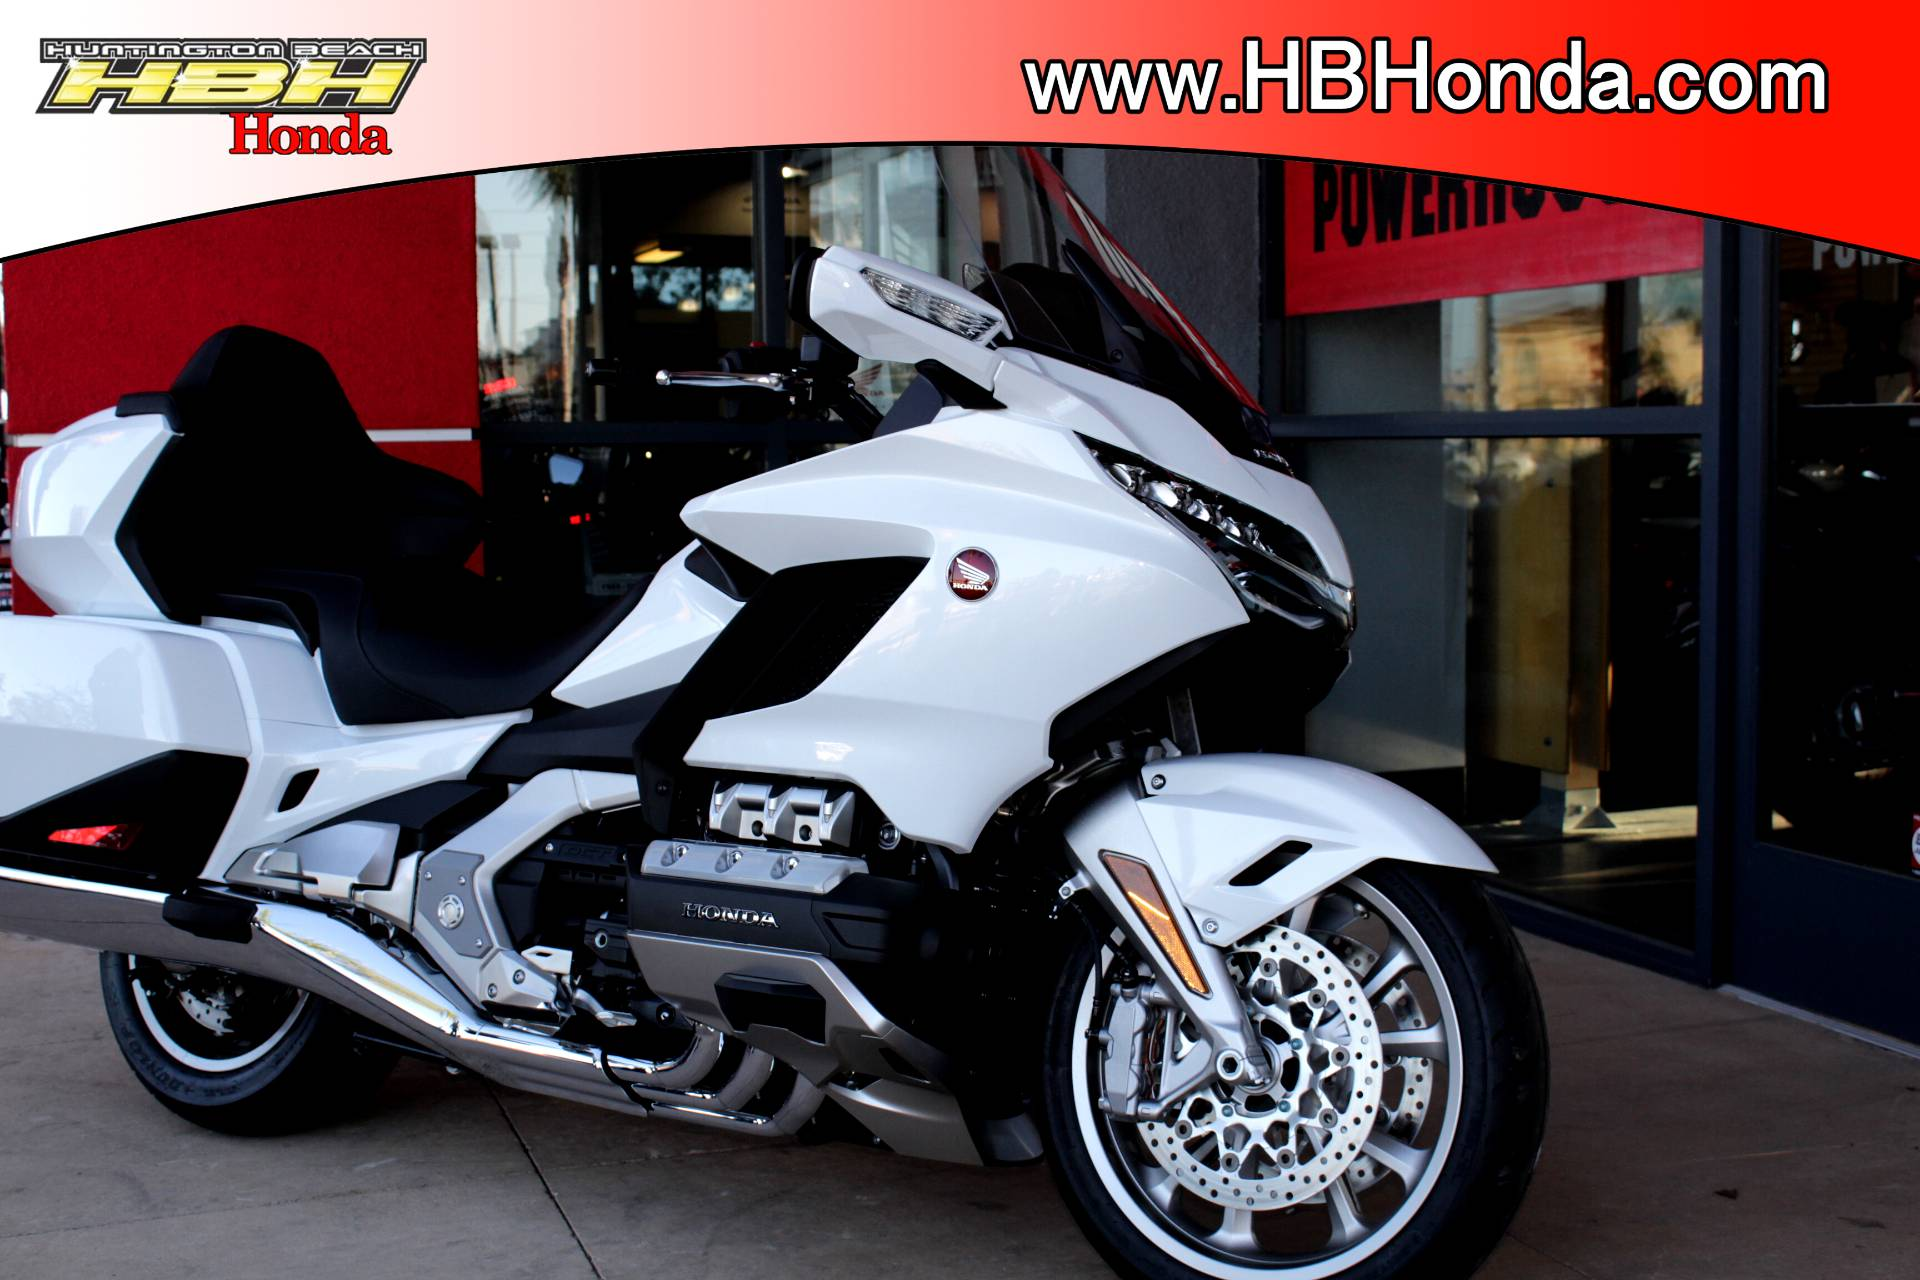 New 2018 Honda Gold Wing Tour Automatic Dct Motorcycles